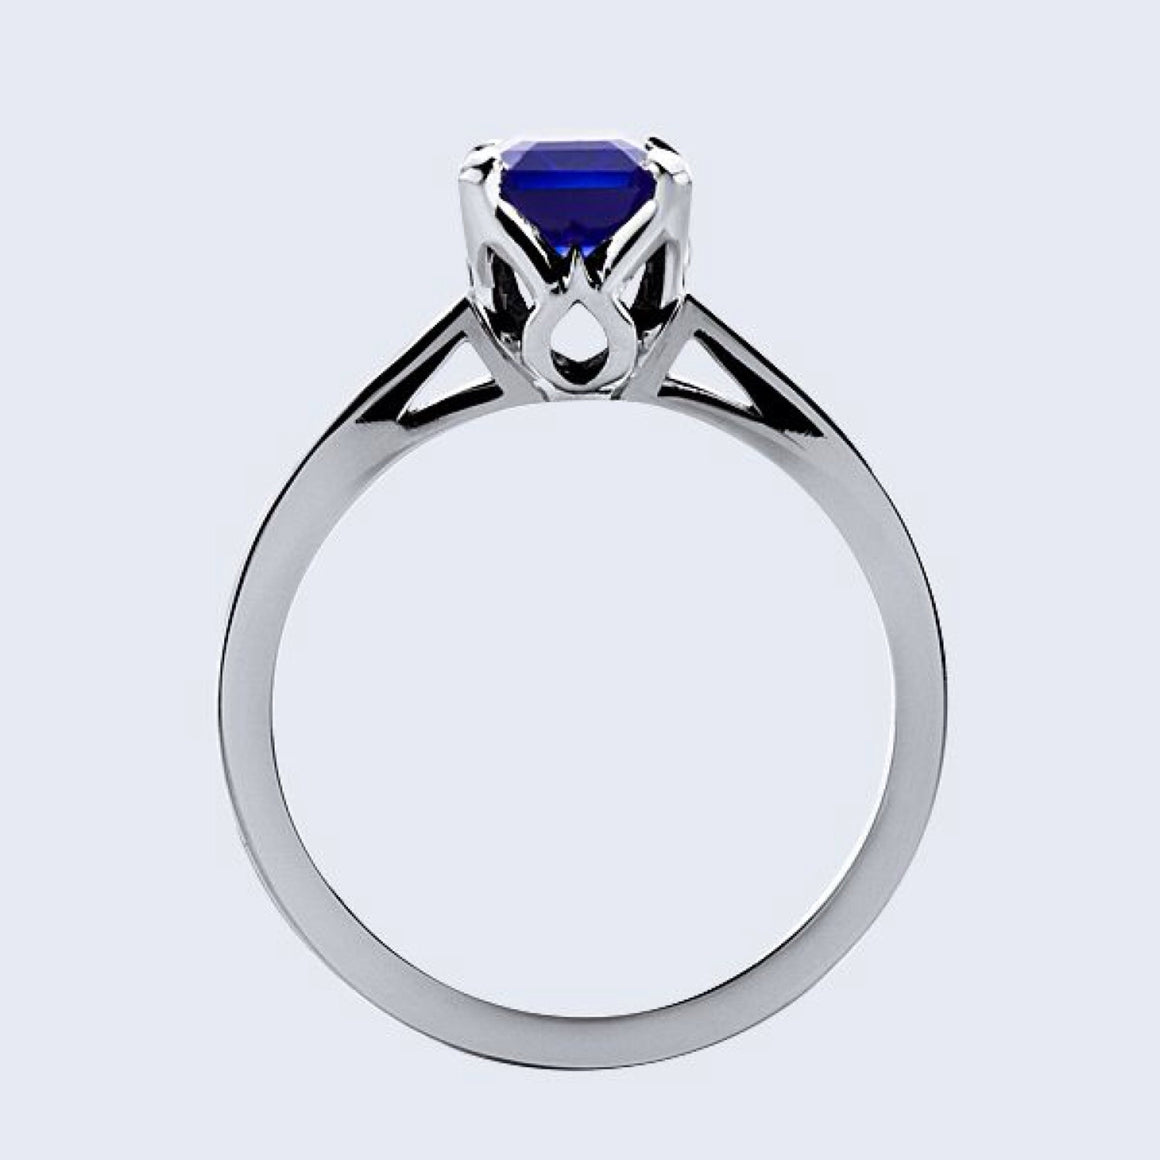 Lab Sapphire Emerald Cut Diamond Engagement Ring 14kt White Gold